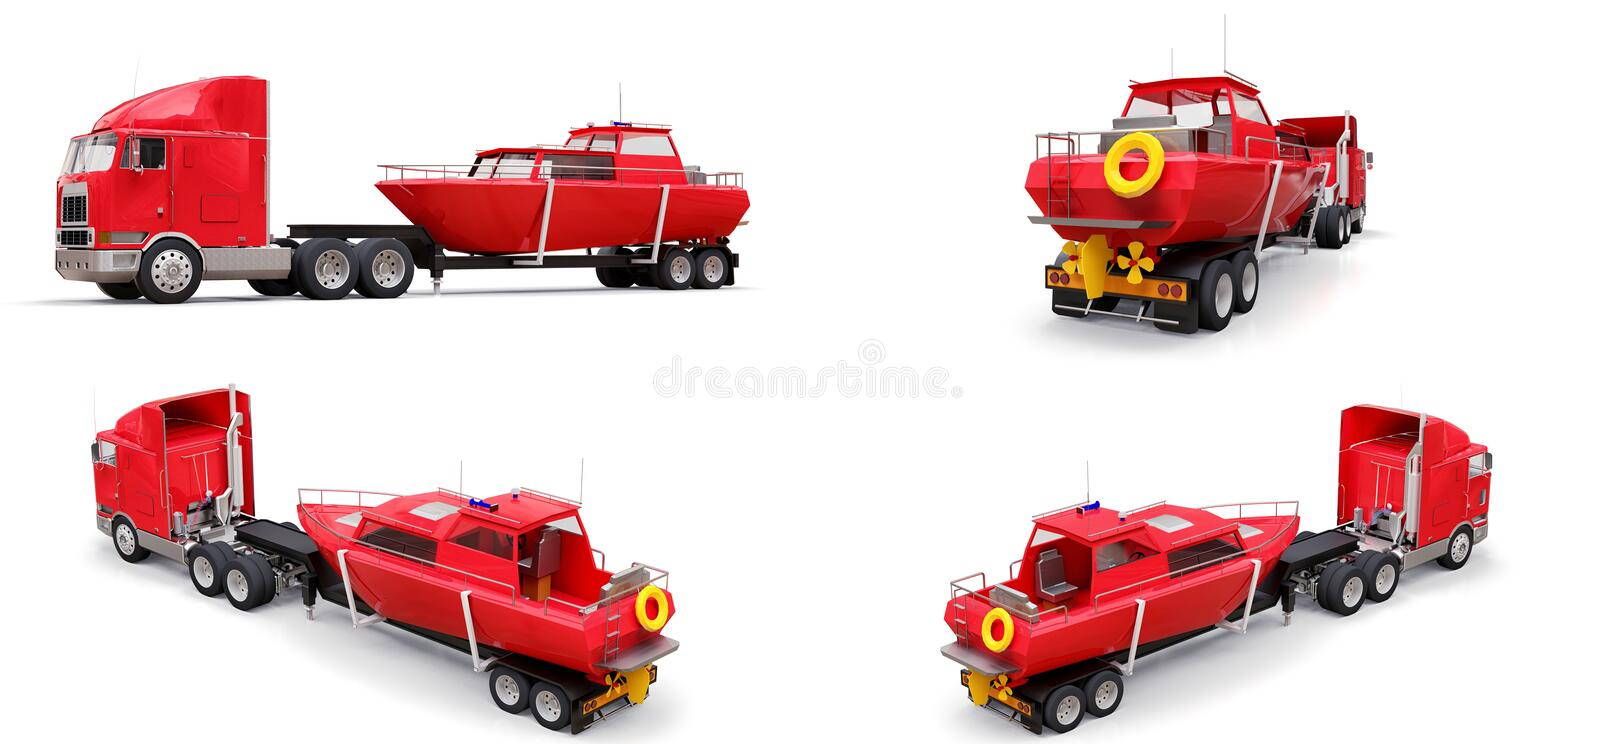 Set big red truck with a trailer for transporting a boat on a white background. 3d rendering. royalty free illustration